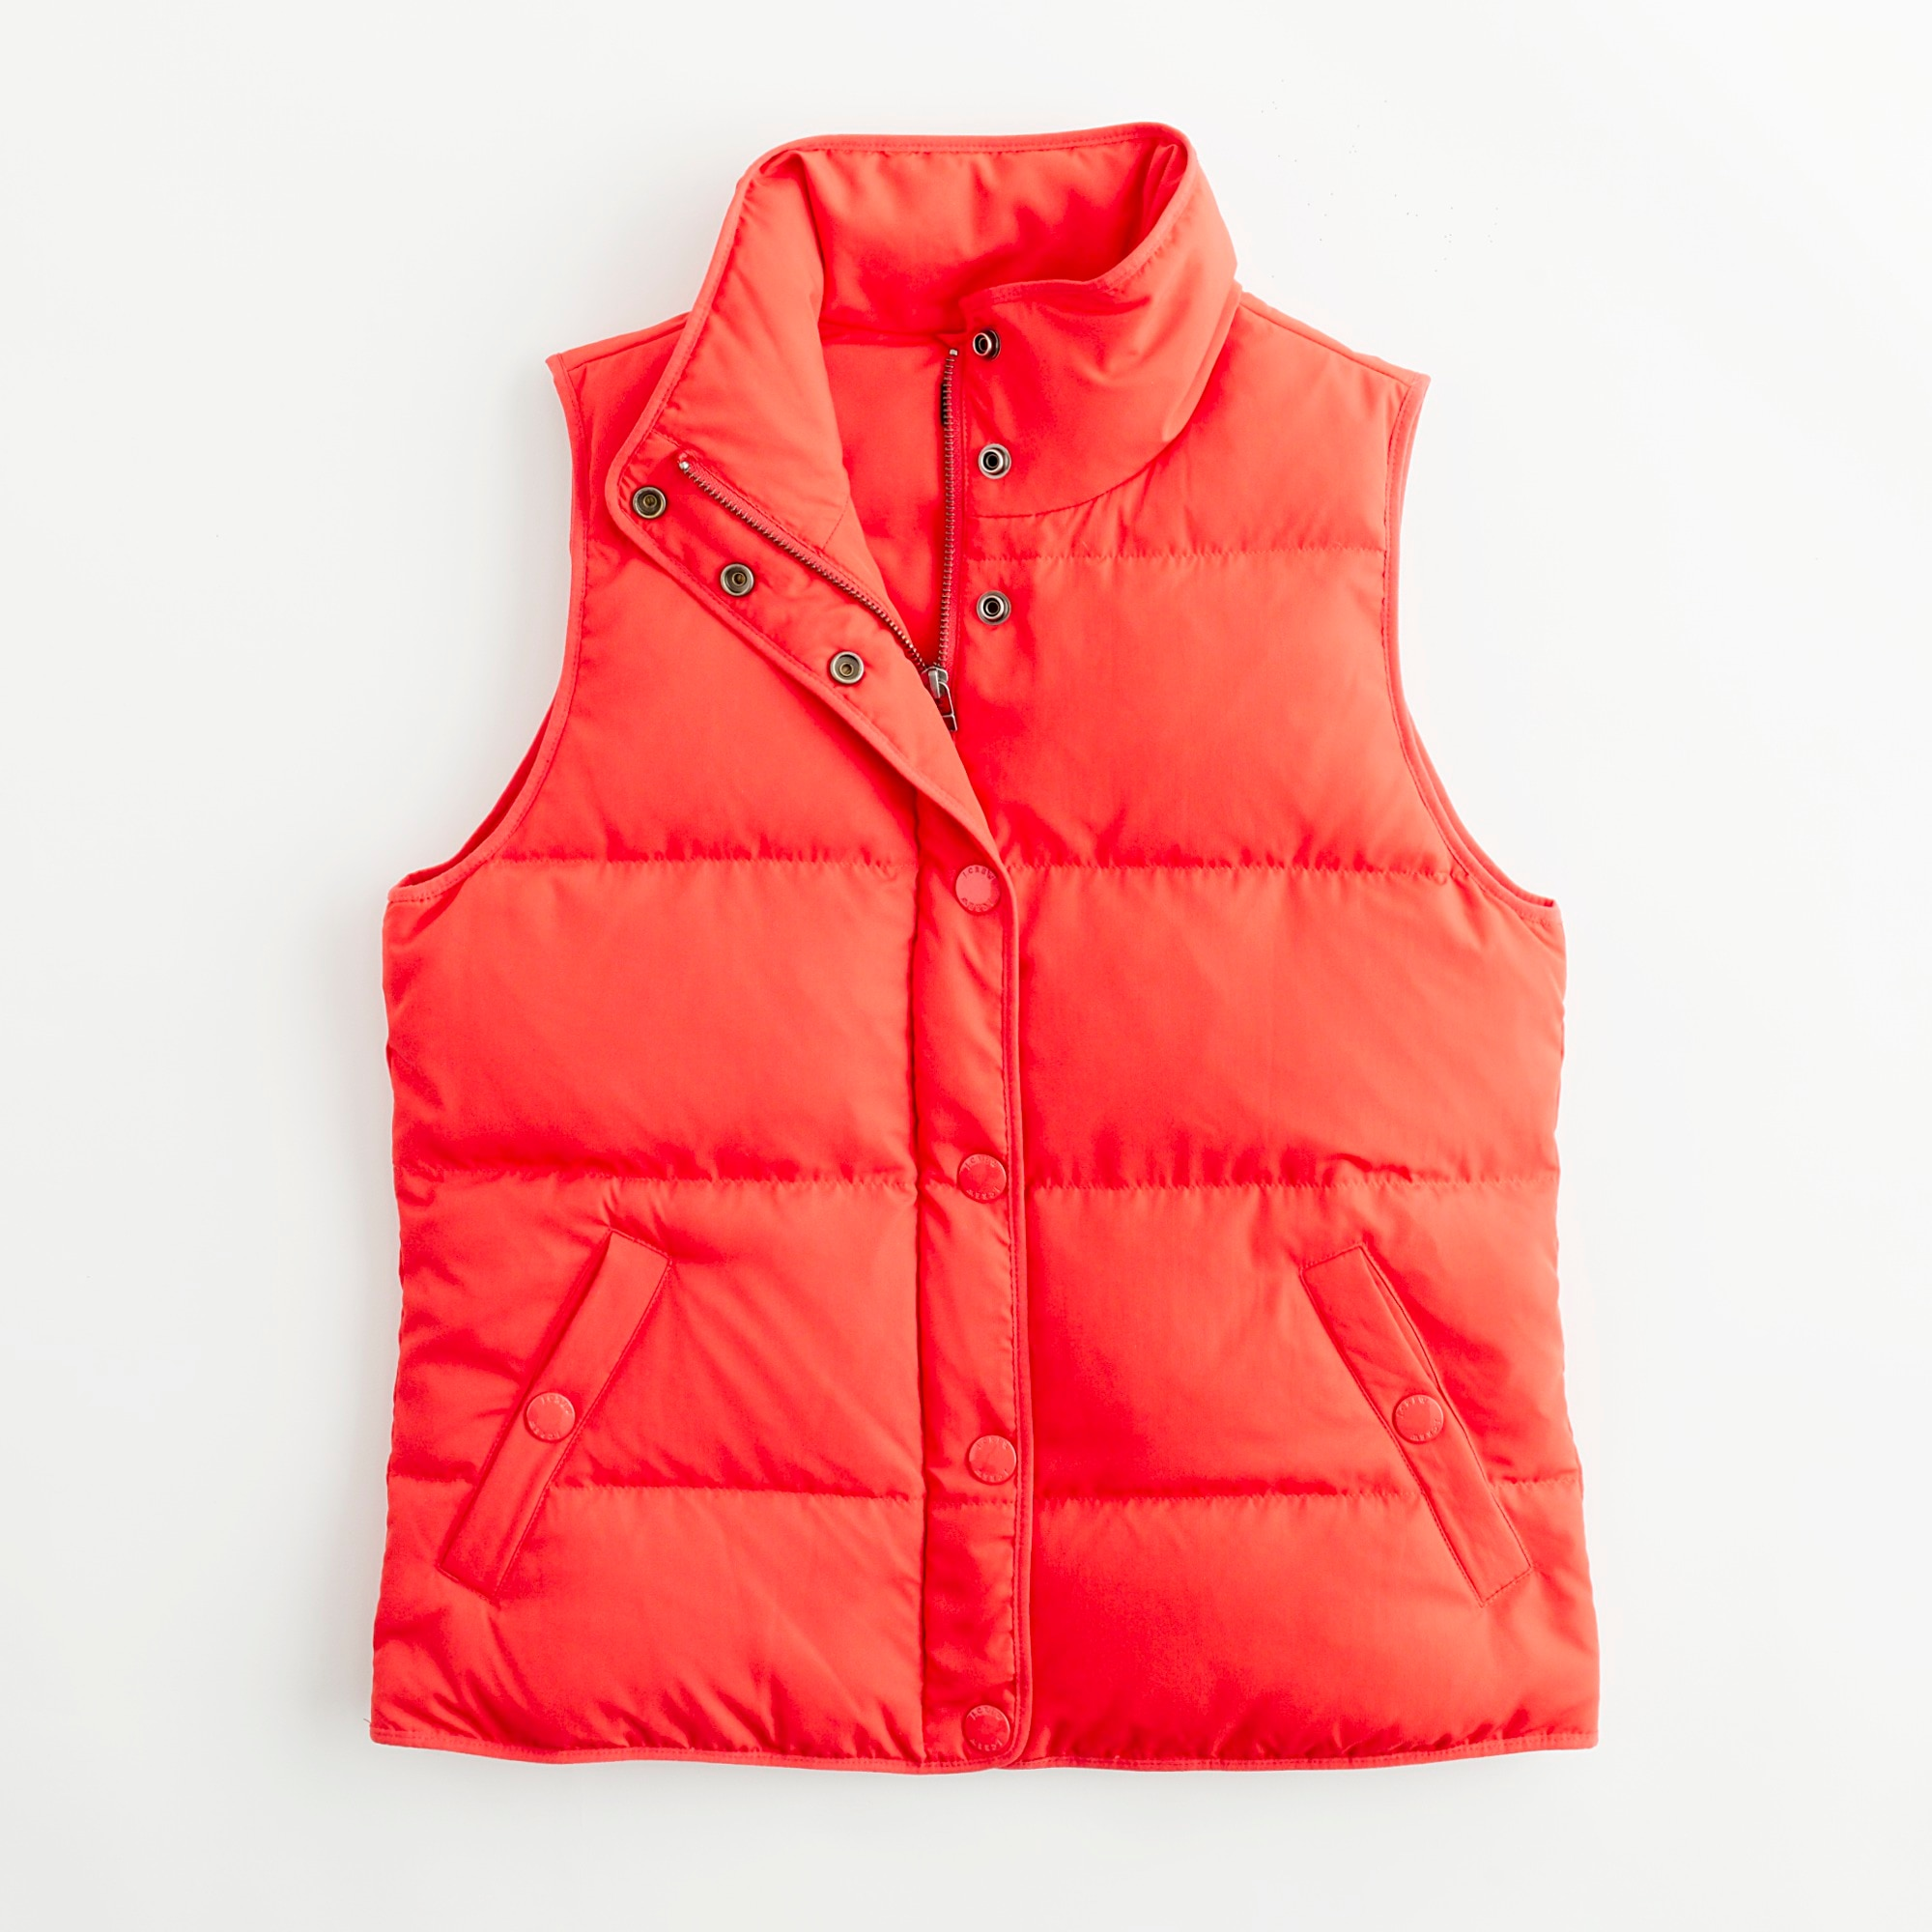 Image 1 for Factory puffer vest